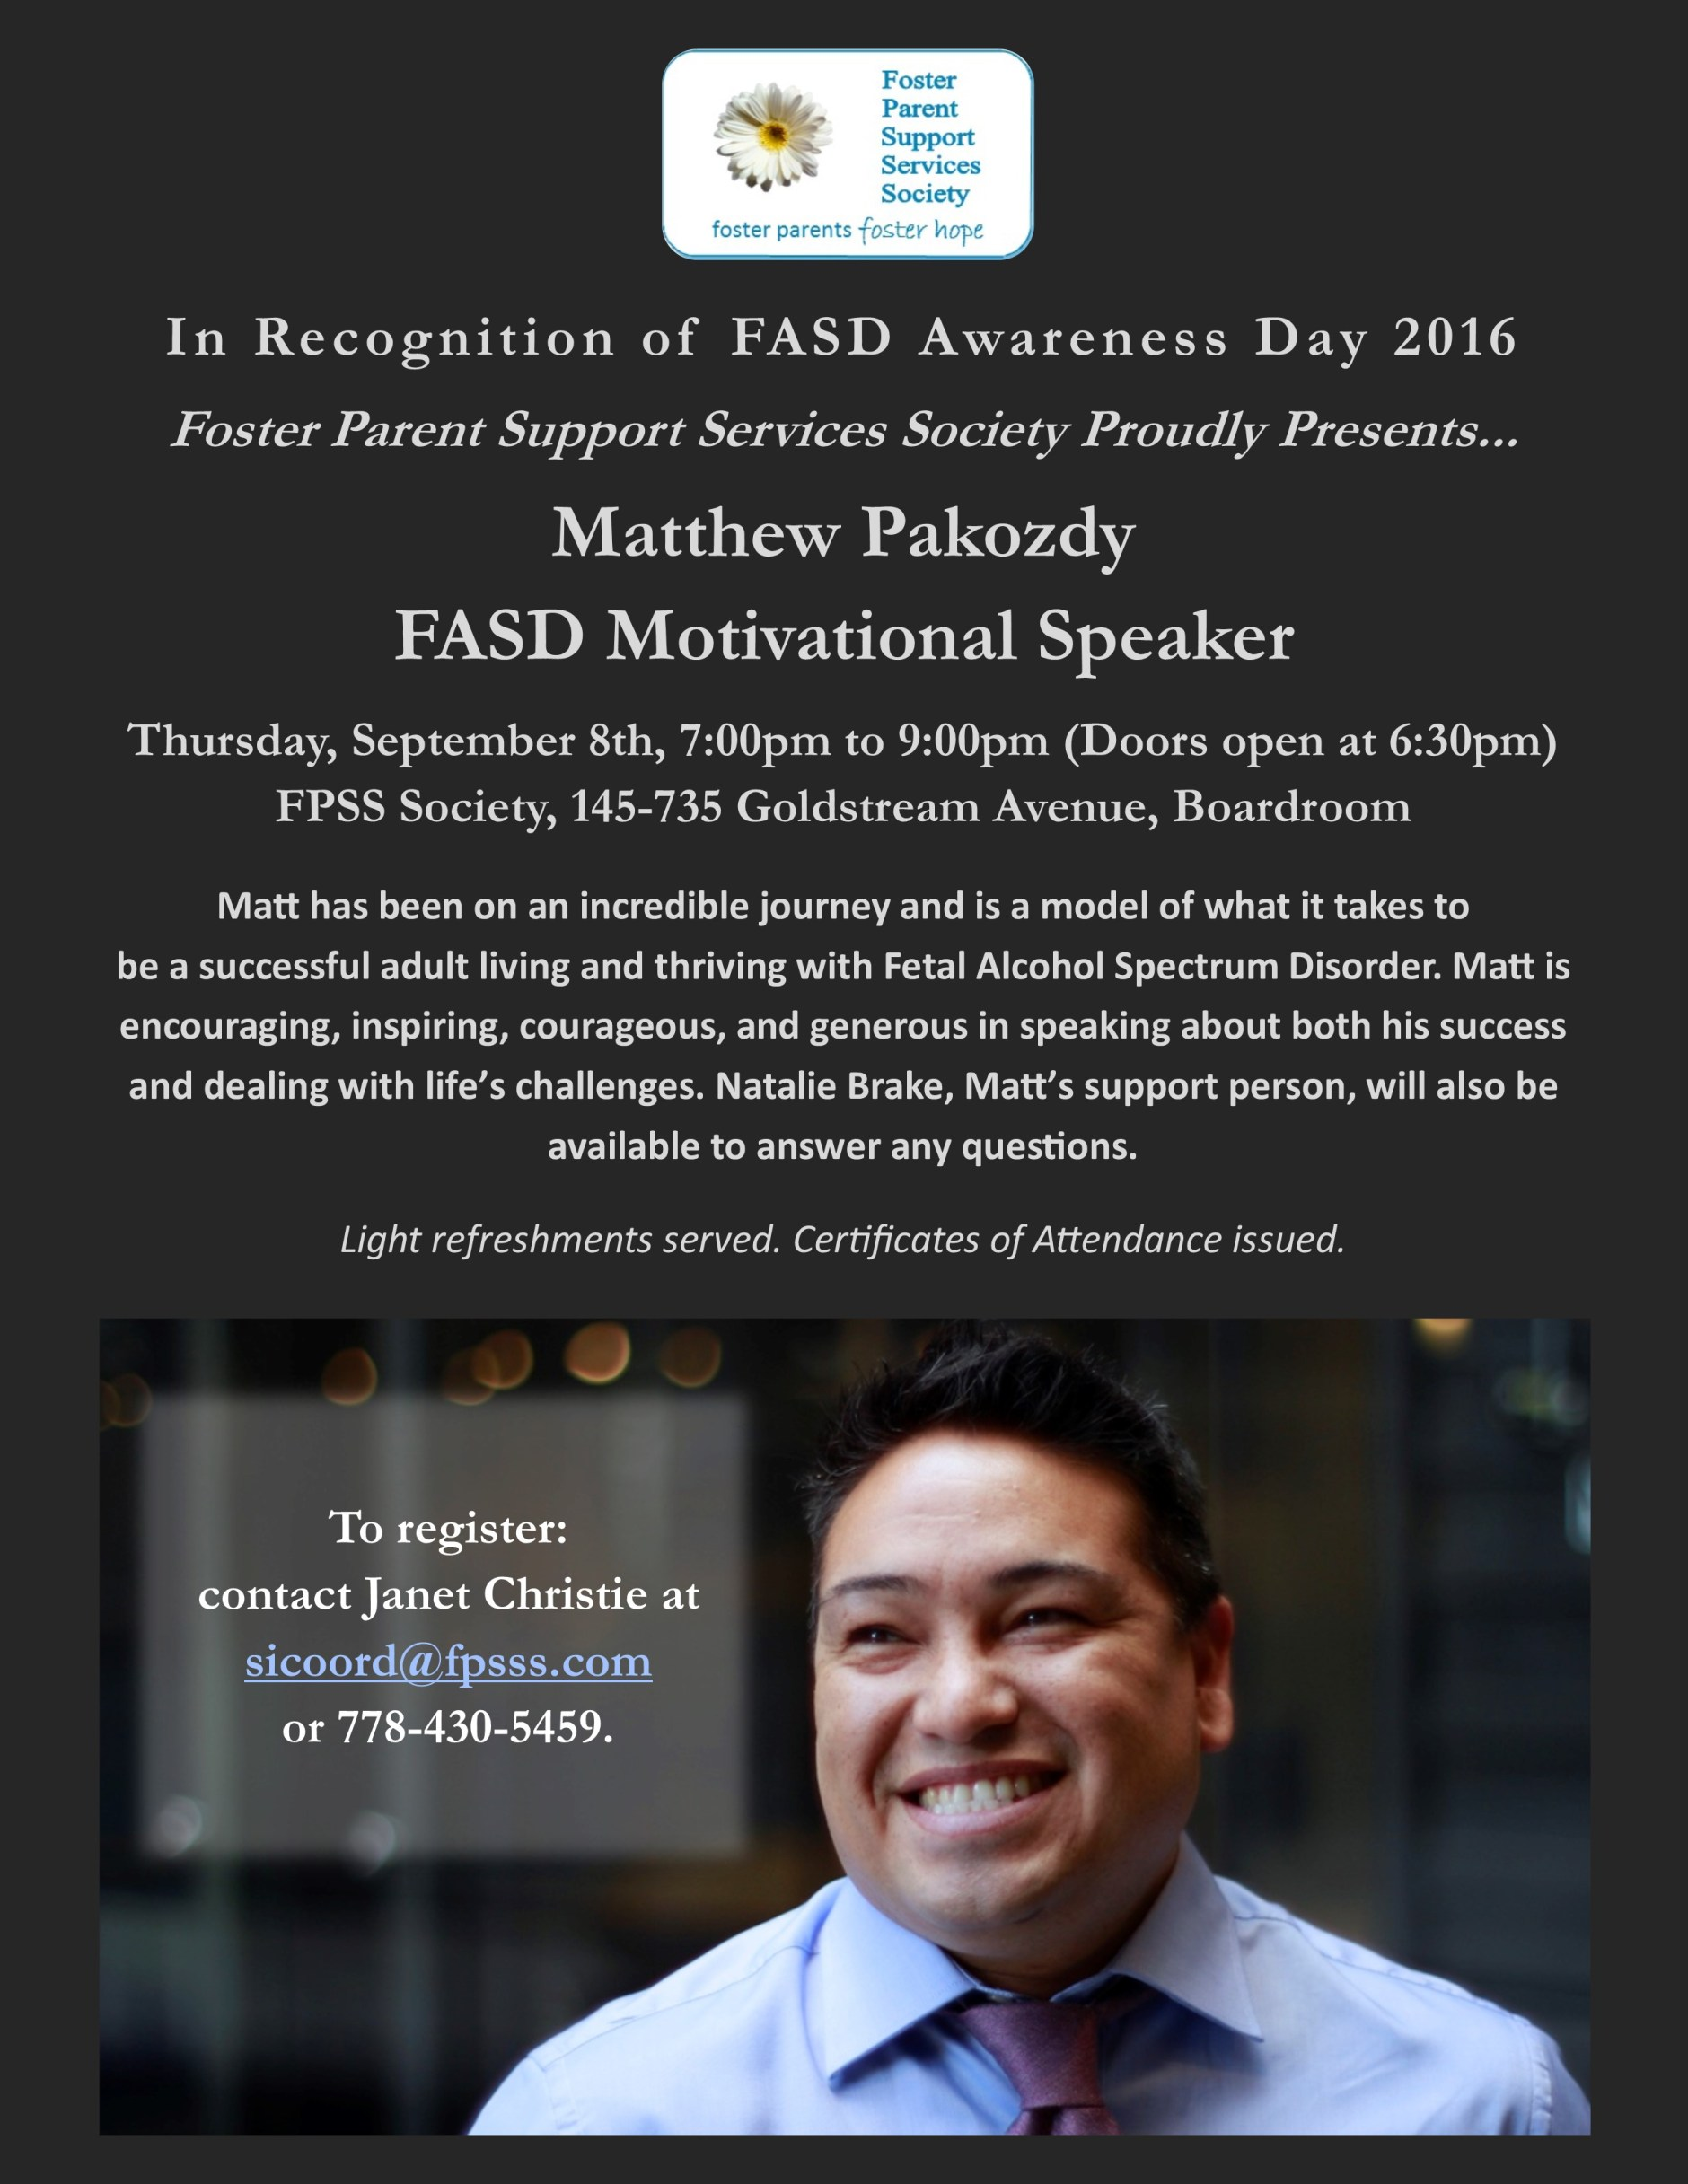 Matthrew Pakozdy FASD Motivational Speaker Poster